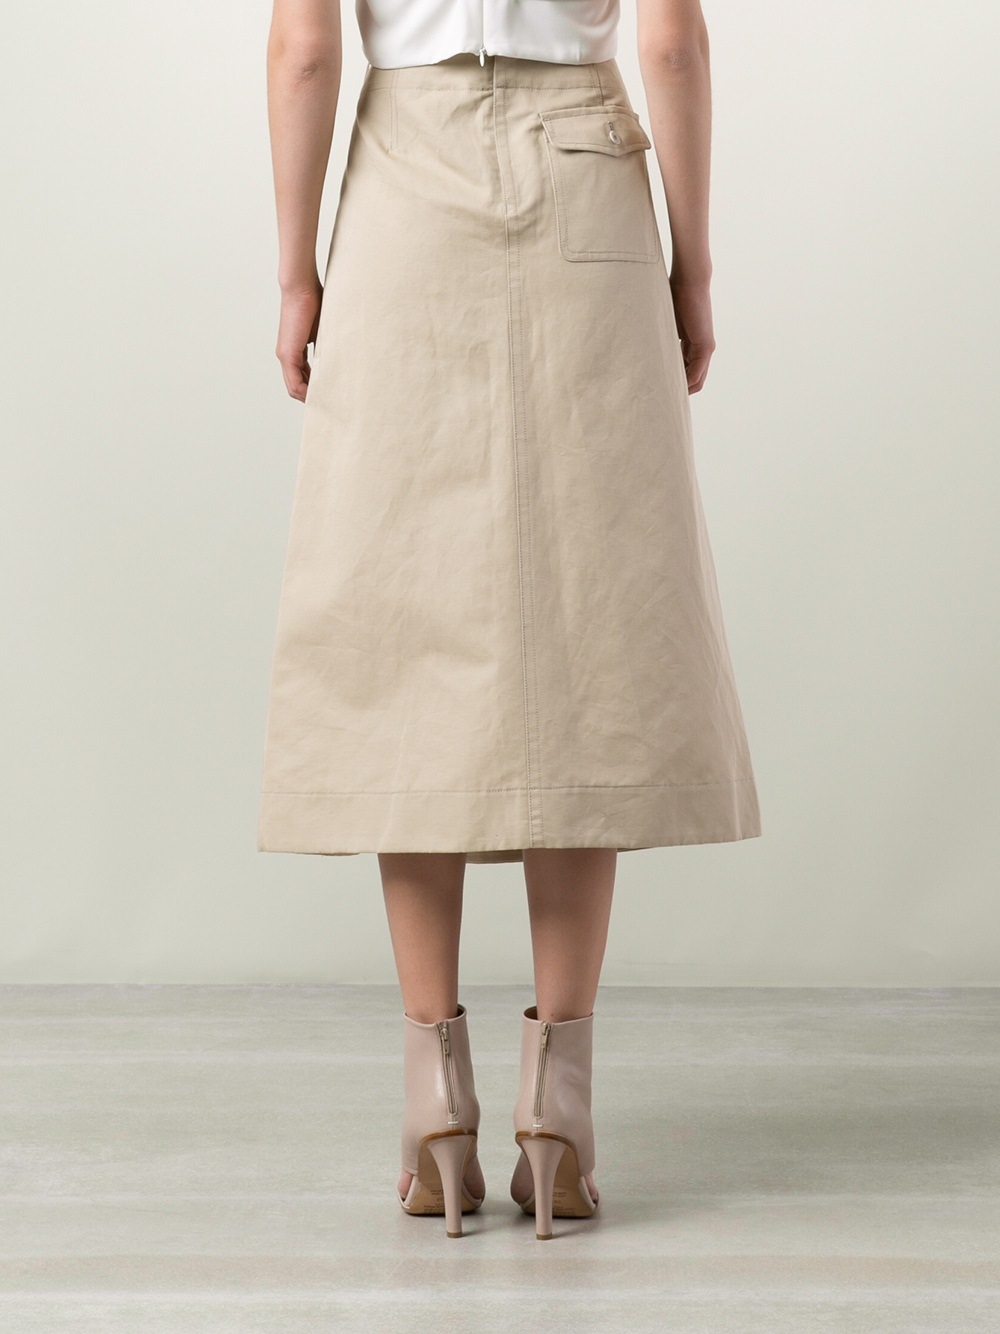 Christophe lemaire A-Line Skirt in Natural | Lyst